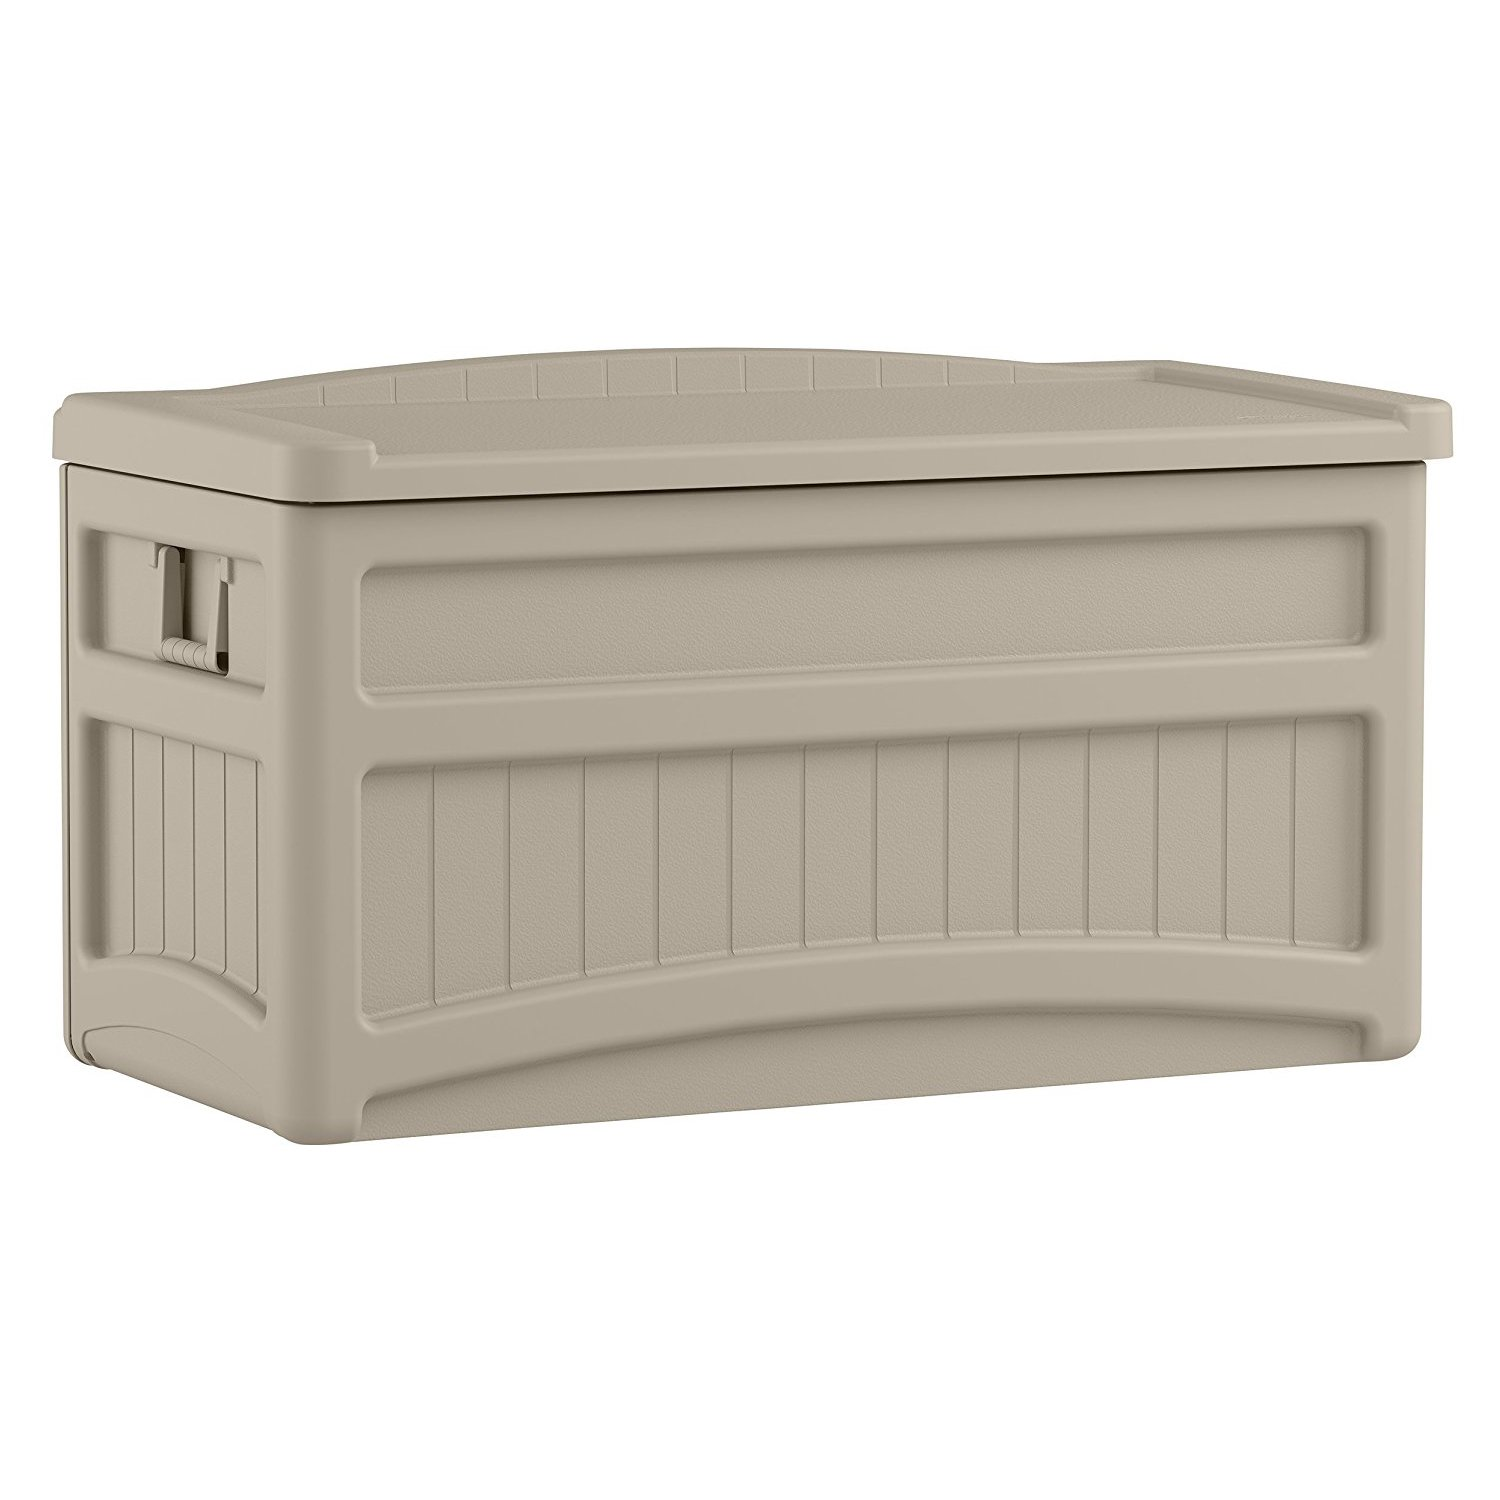 Sample picture of storage box for barbecue tools and accessories